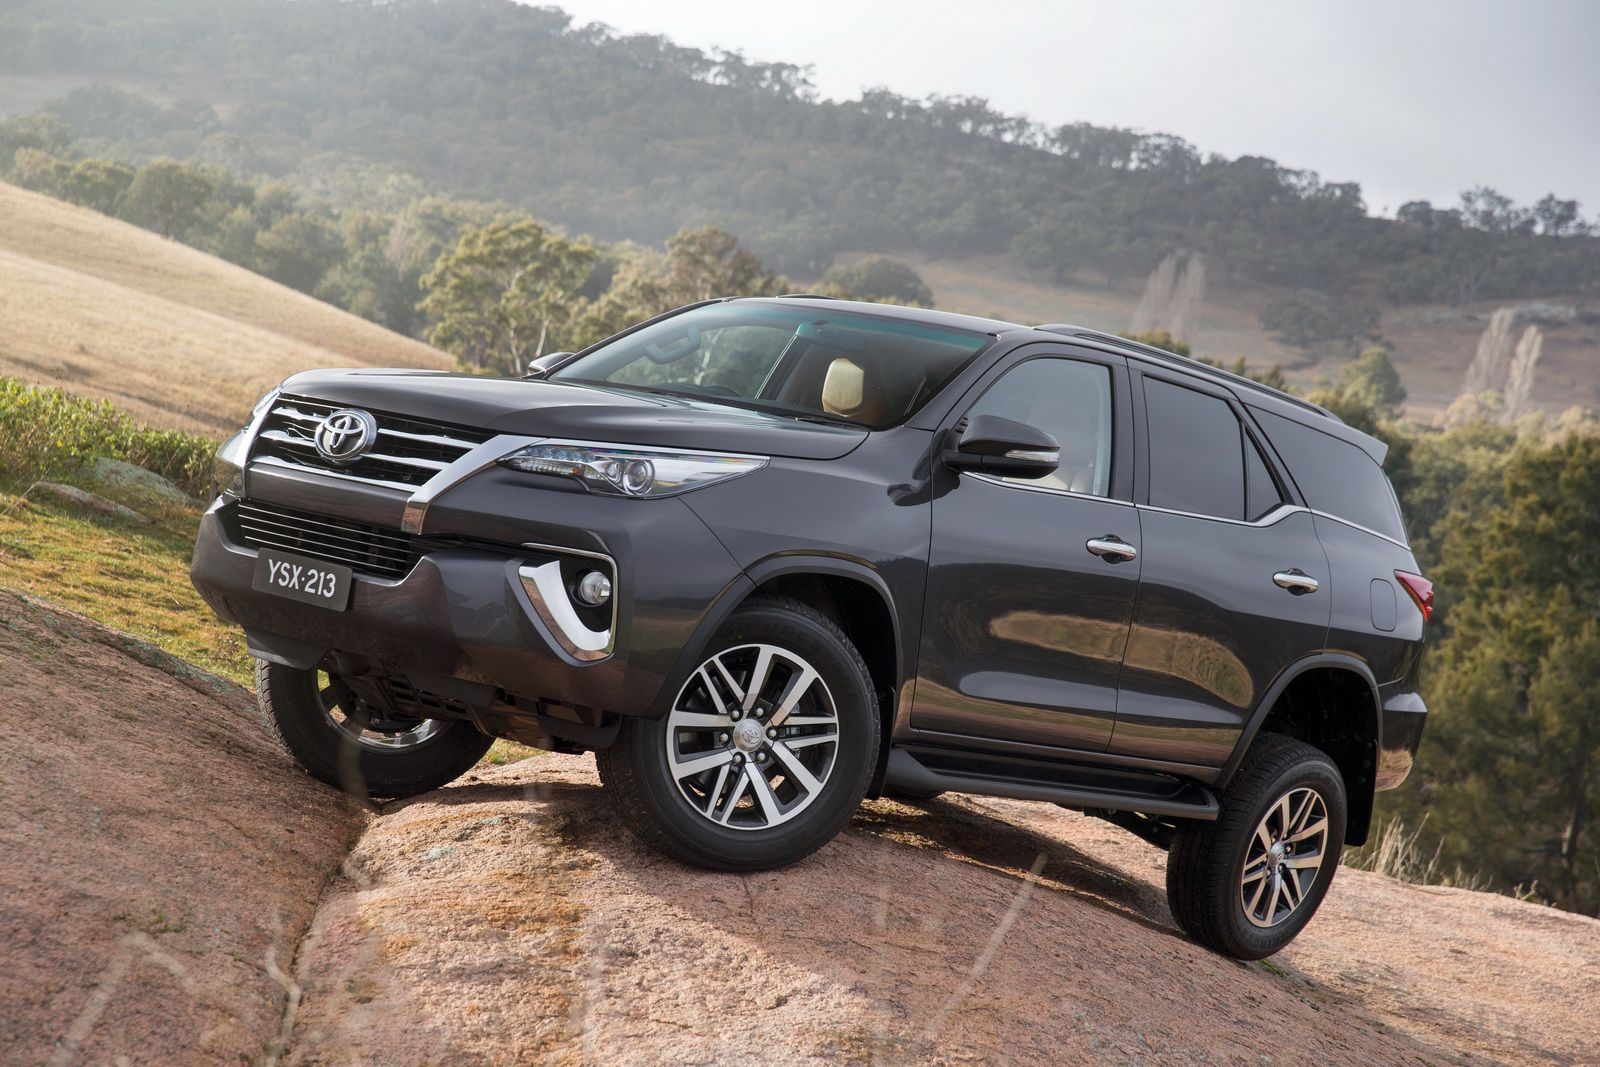 2016 Toyota Fortuner This Is Finally It W Video Carscoops Toyota Car Models Toyota Cars Toyota Hilux